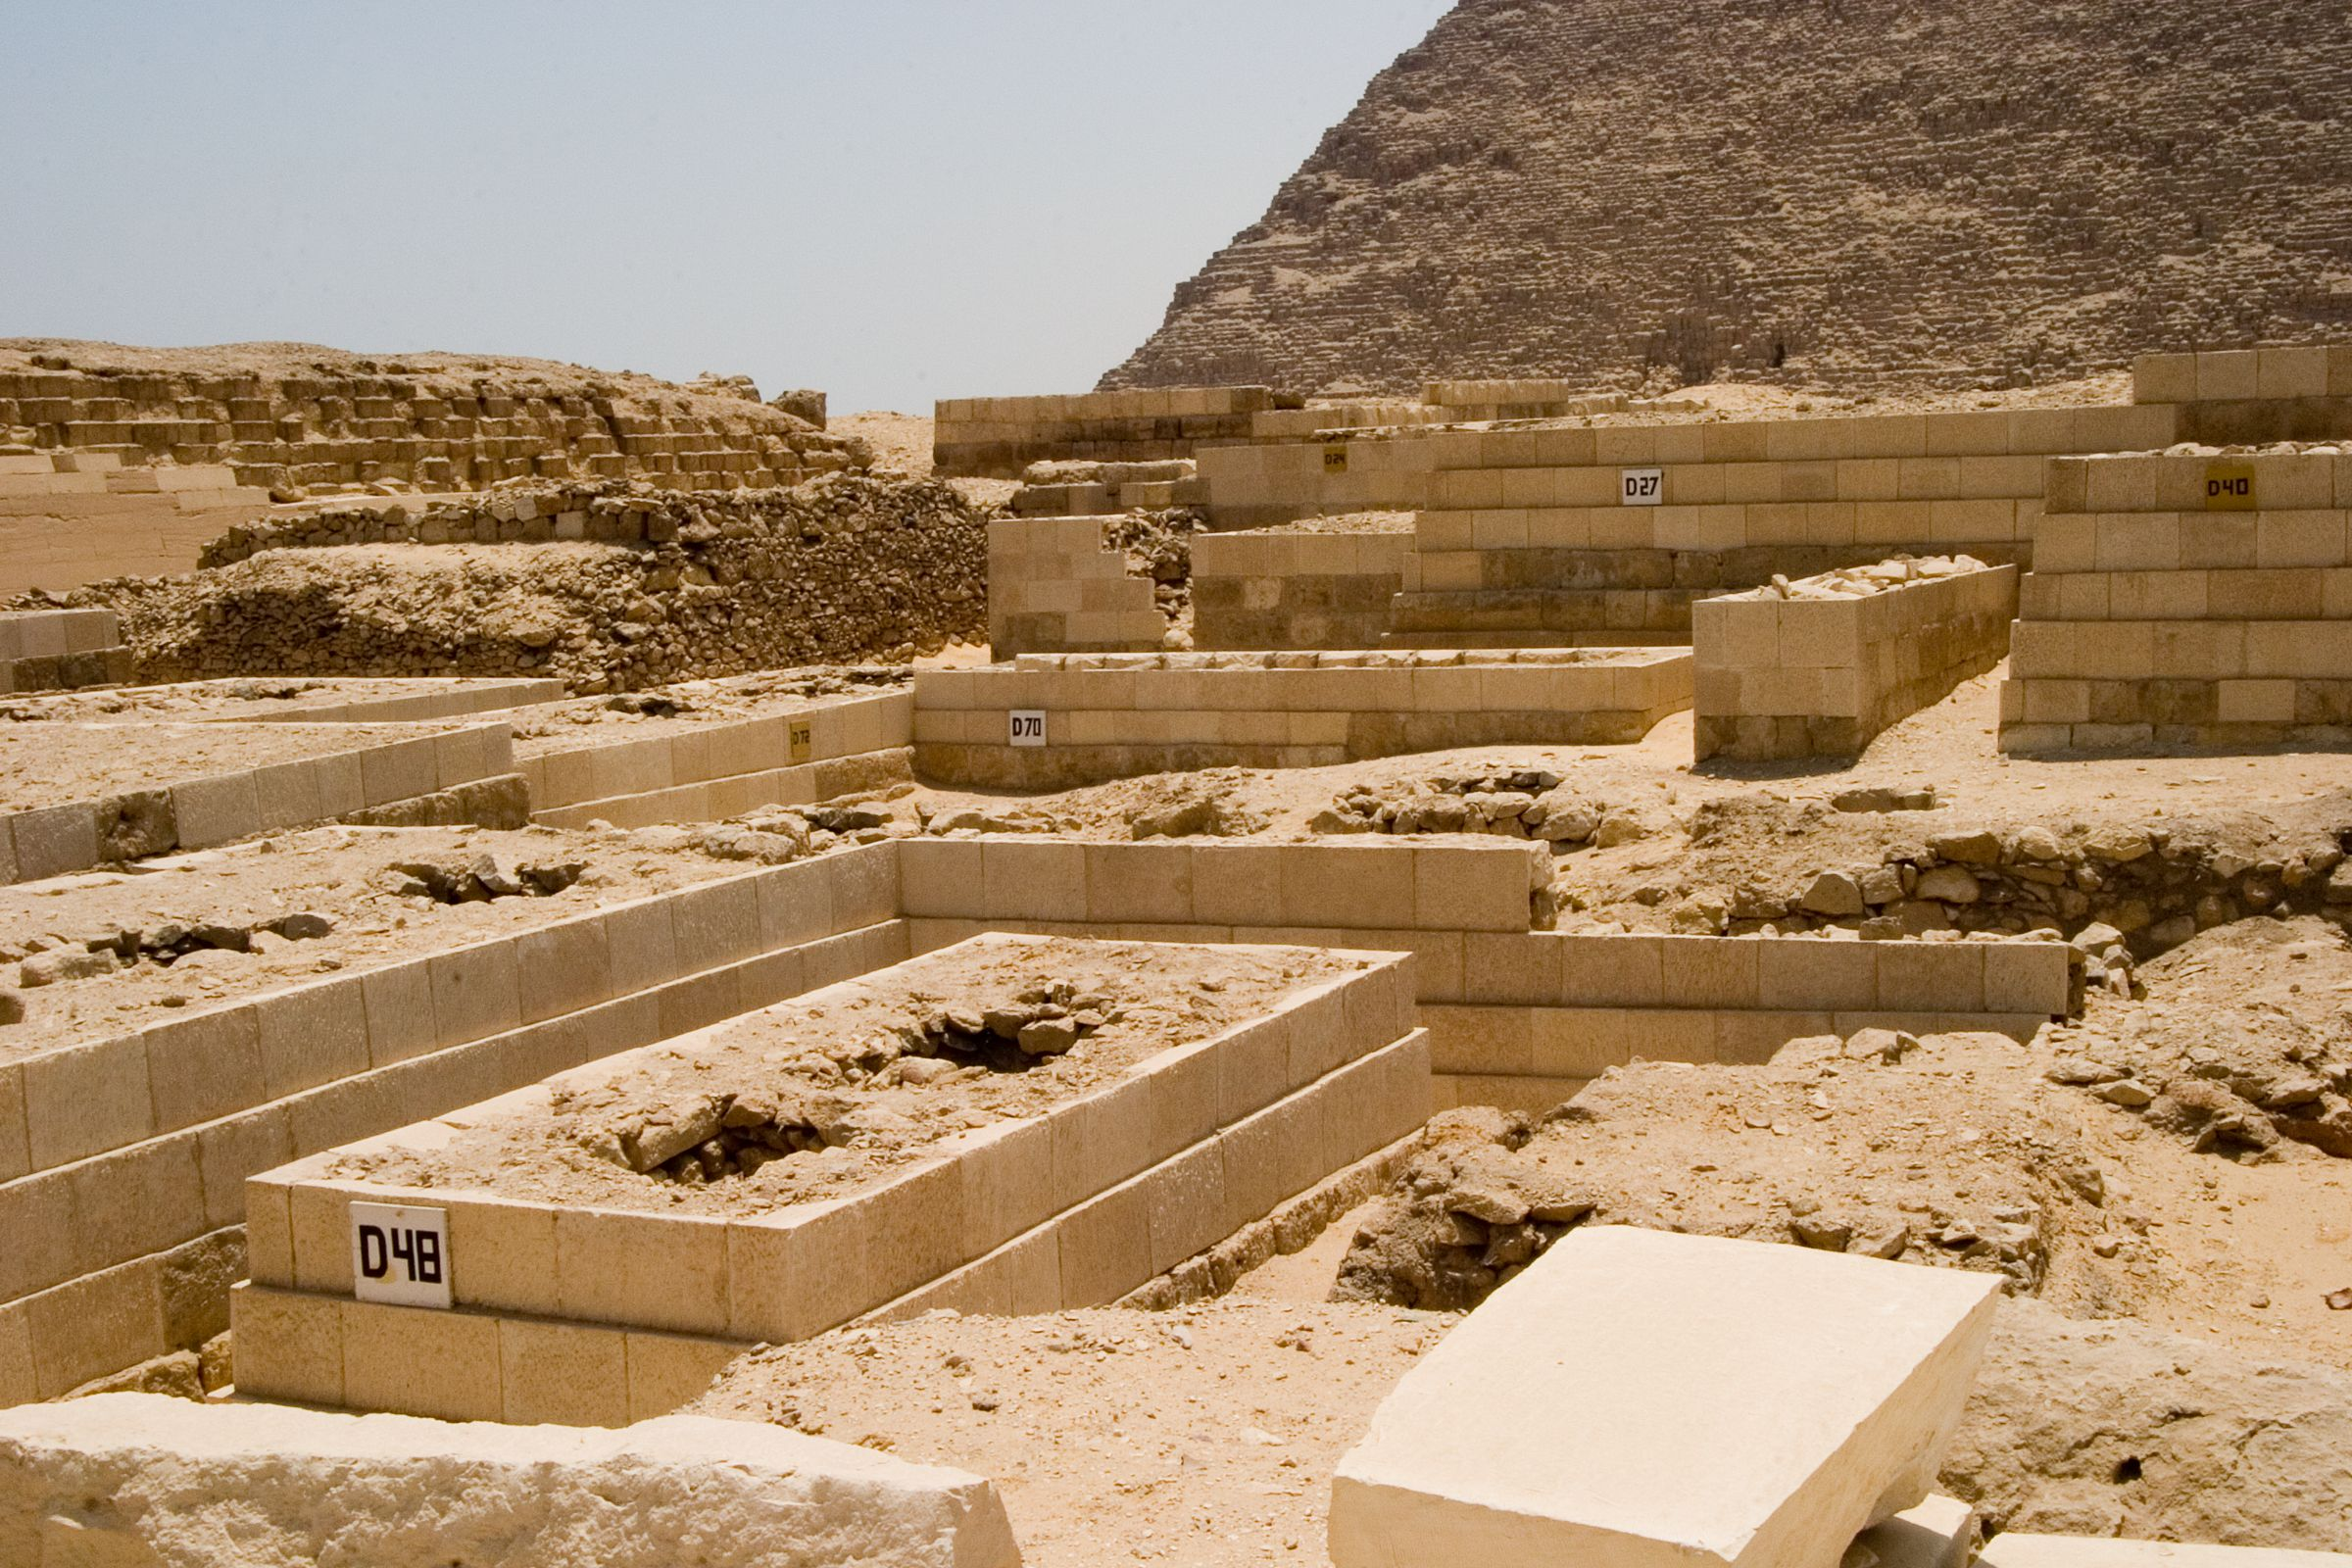 Western Cemetery: Site: Giza; View: D 48, D 70, D 27